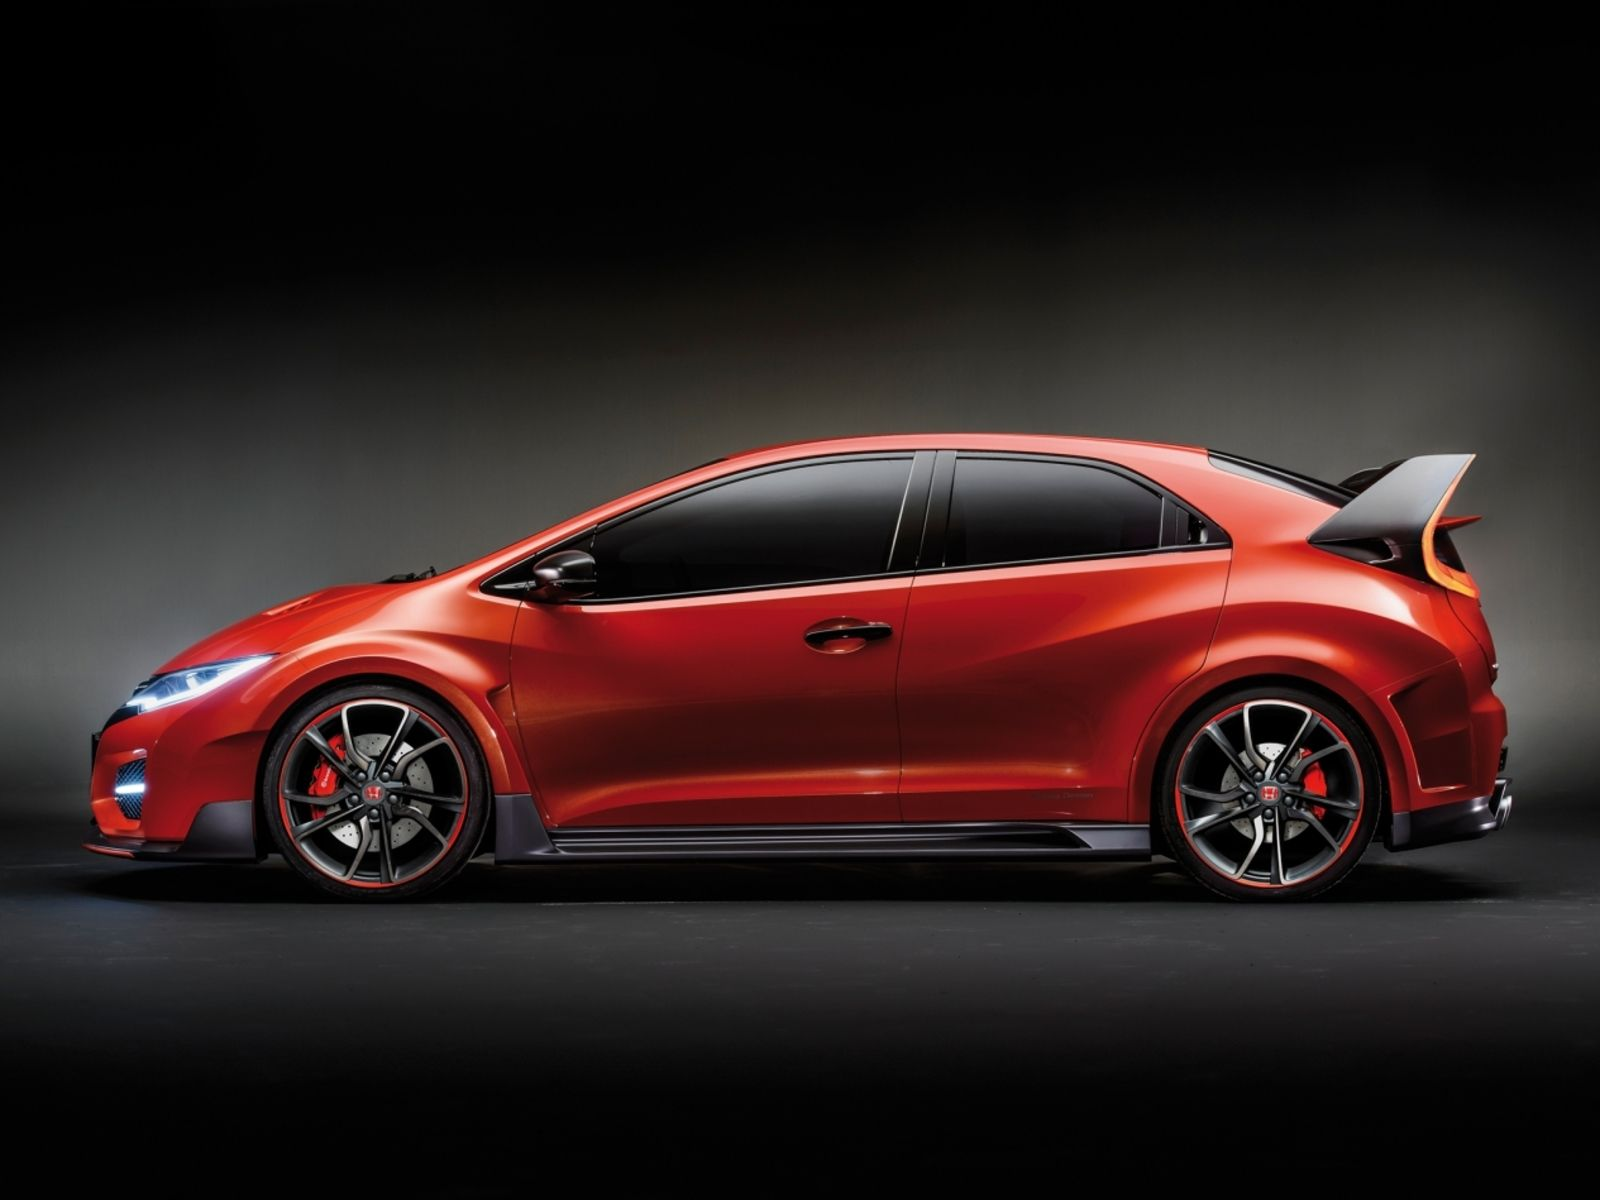 2016 Honda Civic Type R Price Philippines Check more at